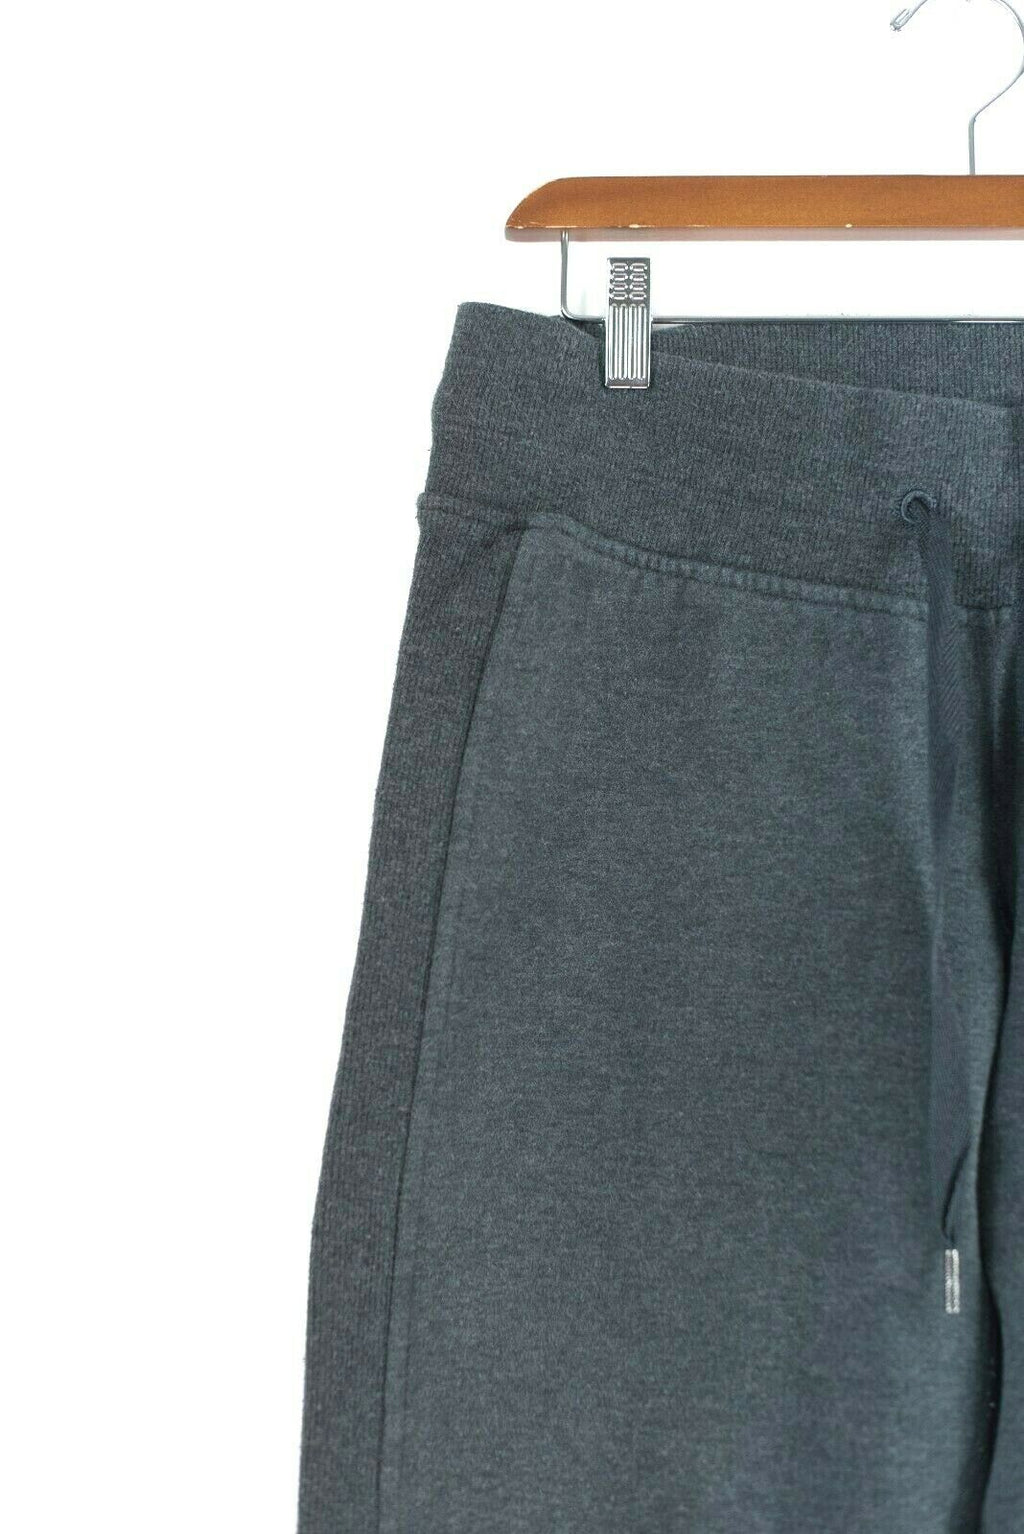 Lululemon Athletica Womens 8 Medium Grey Yoga Pants Thick Sweatpants Joggers